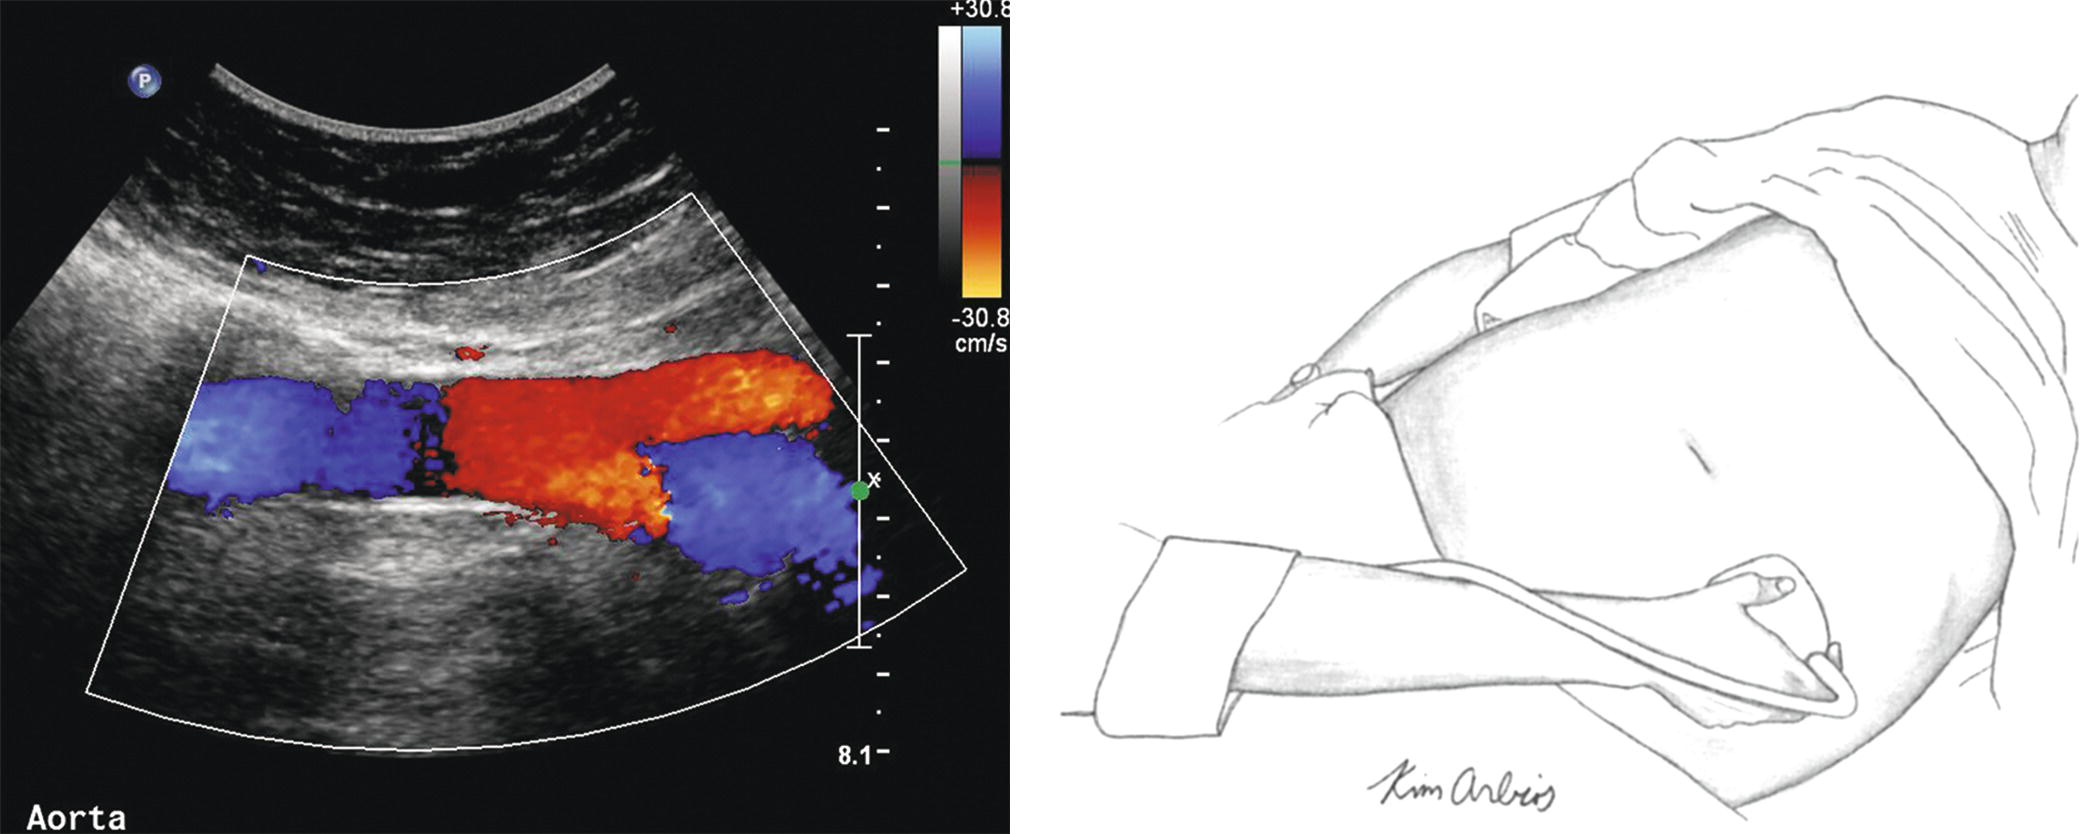 Duplex Evaluation Of Lower Extremity Arterial Occlusive